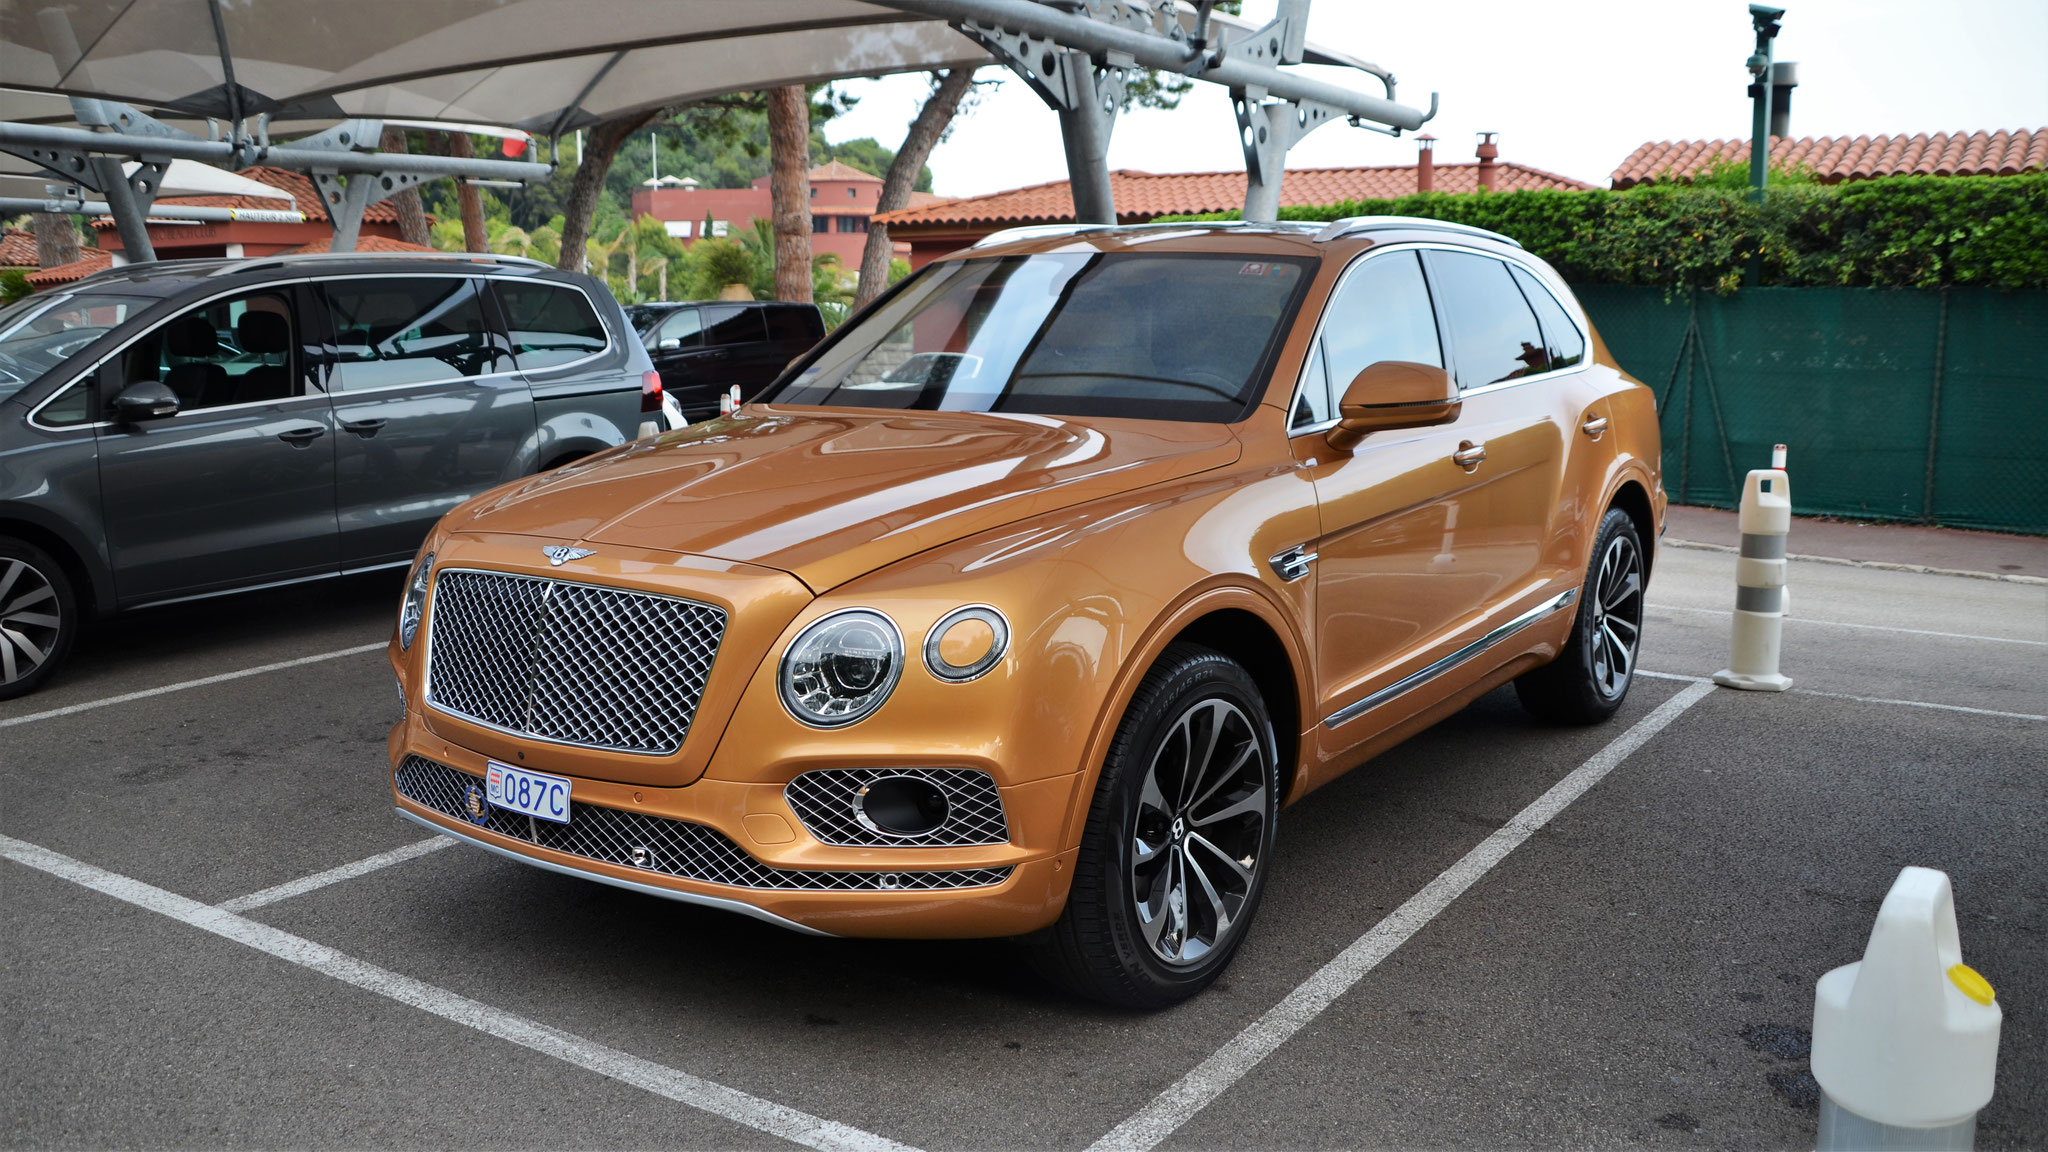 Bentley Bentayga - 087C (MC)